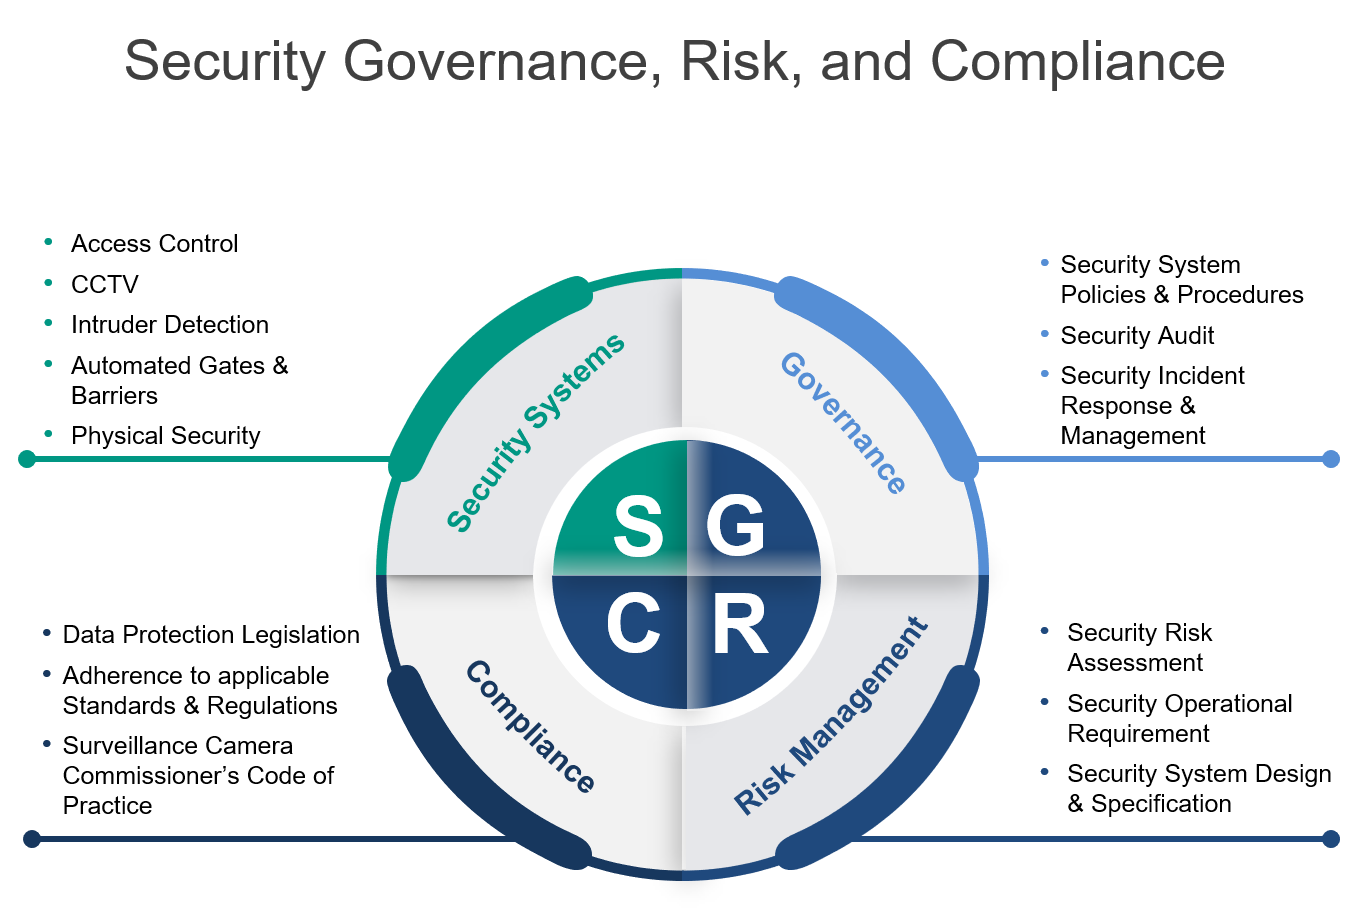 Evolution Risk & Design takes a Governance, Risk and Compliance perspective when addressing security issues and provides services to support client requirements. By engaging directly with the client, the Risk & Design team supports innovative and compliant security system design aligned to Evolution Europe's end-to-end security system offer.